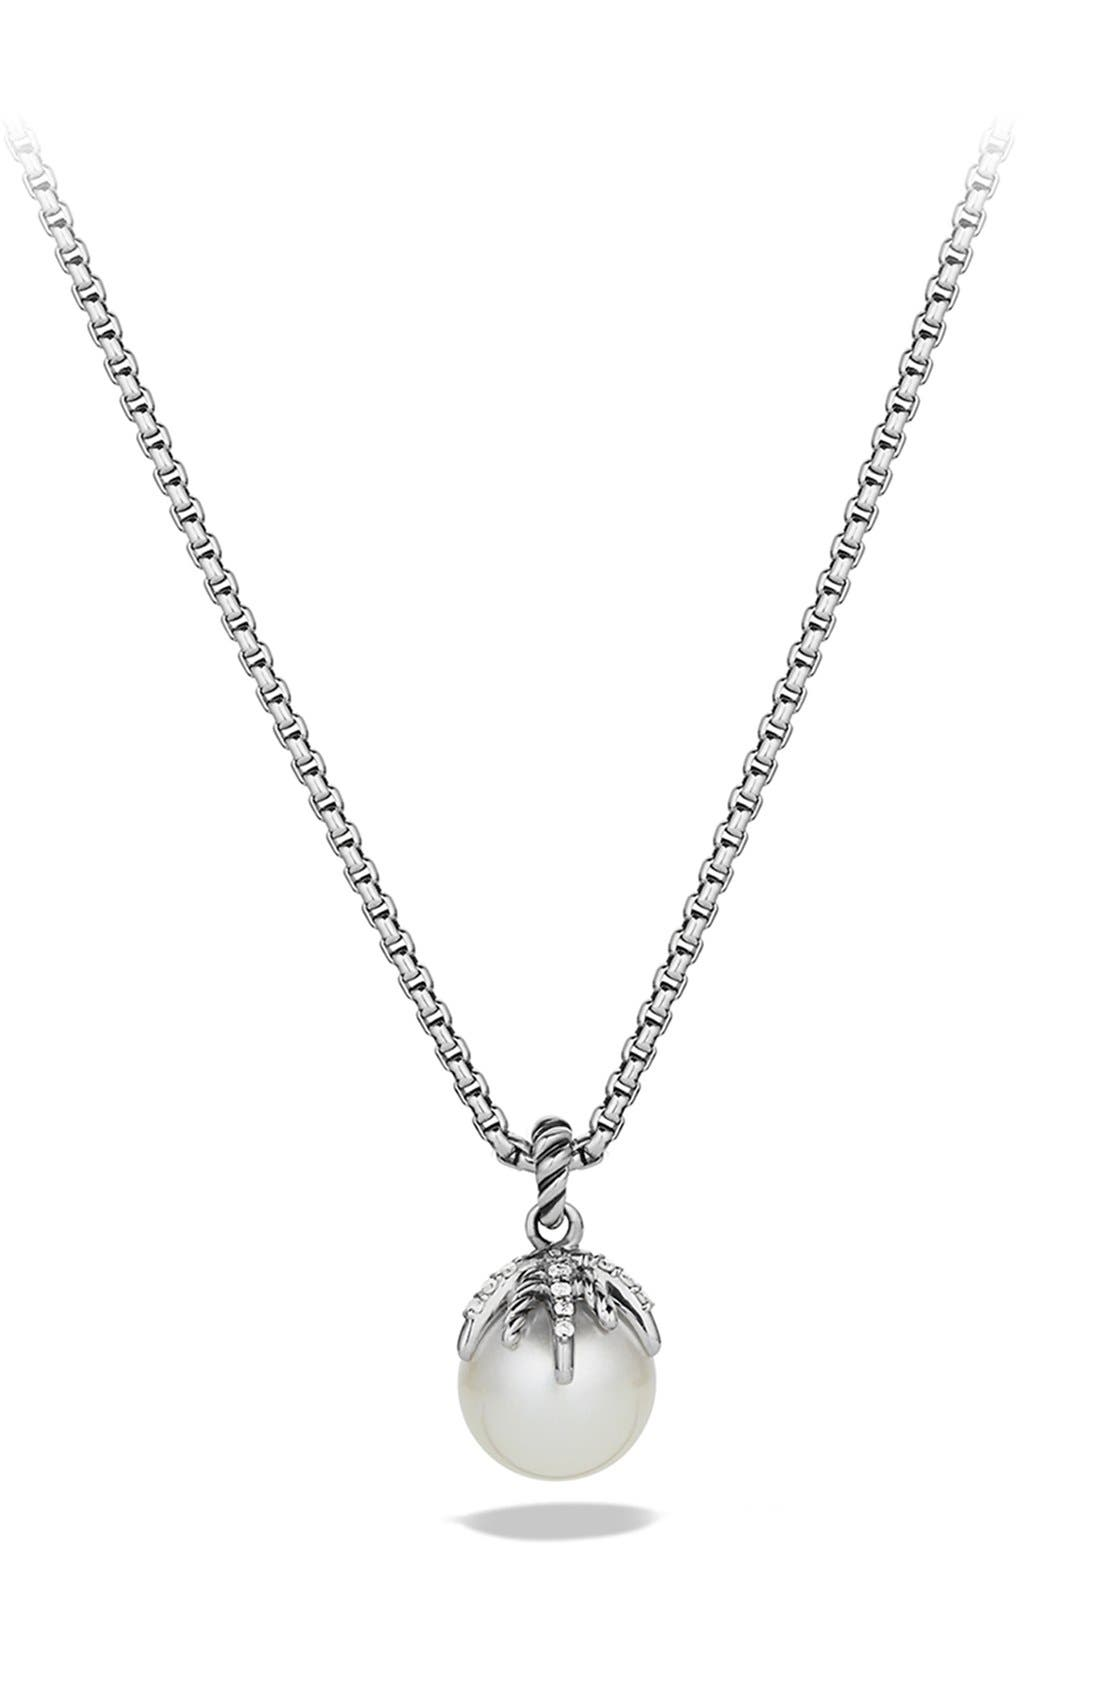 David Yurman 'Starburst' Pearl Pendant with Diamonds on Chain